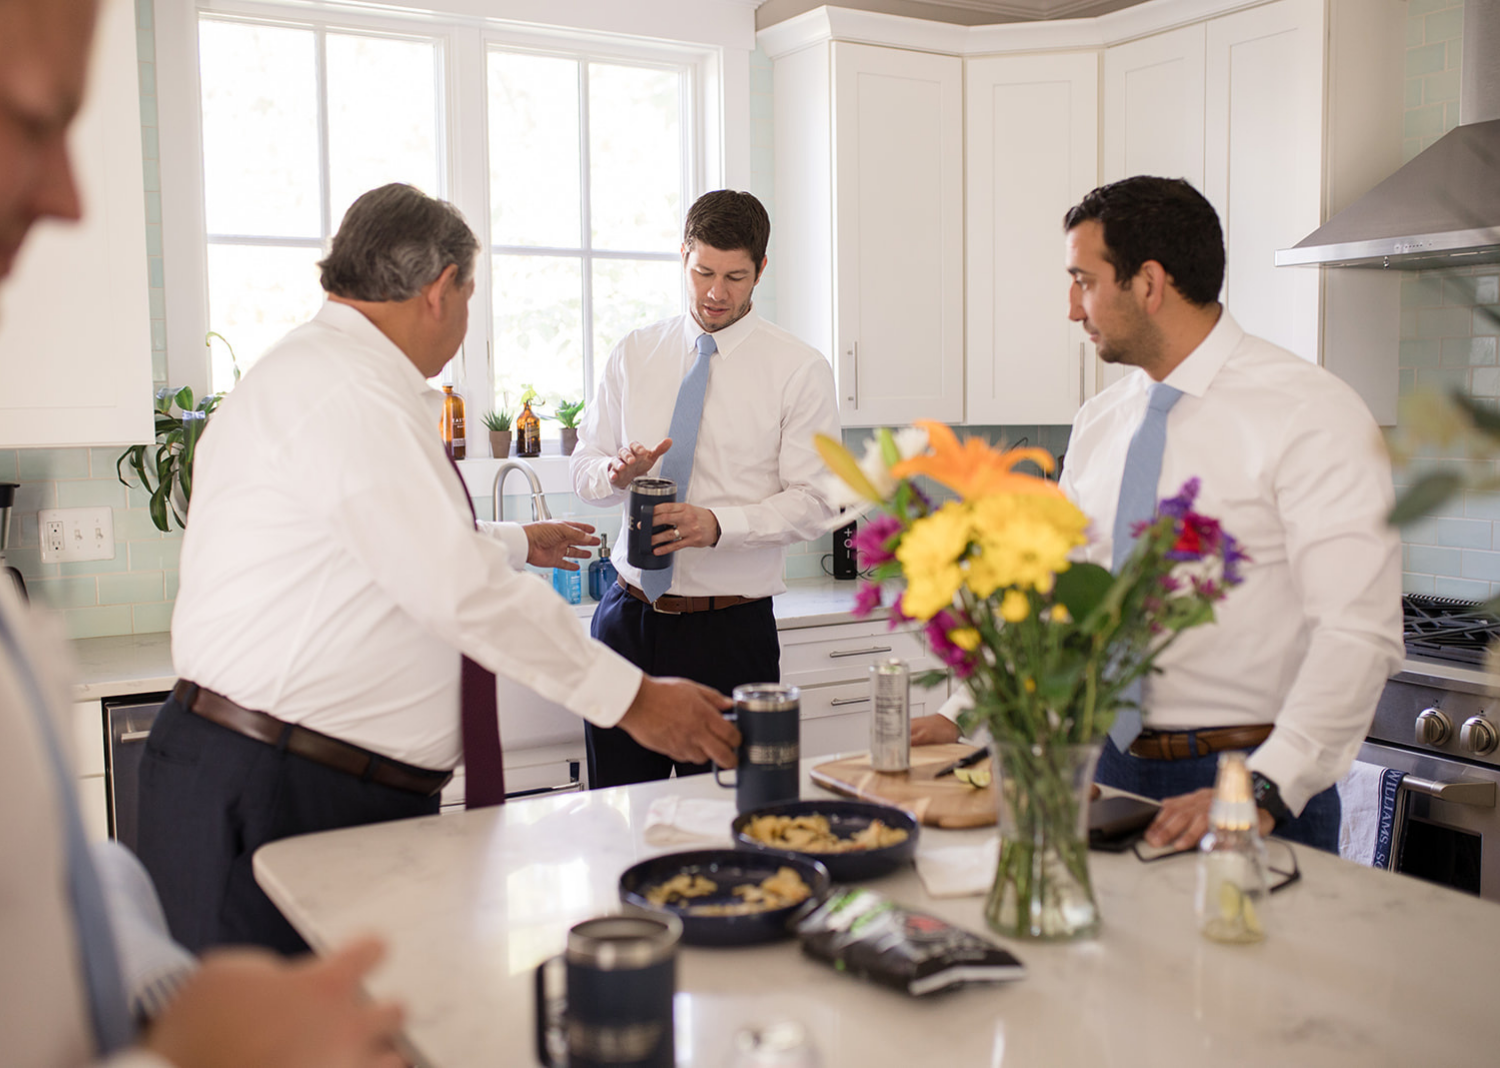 groom and groomsmen sharing a drink in the kitchen area before the wedding day